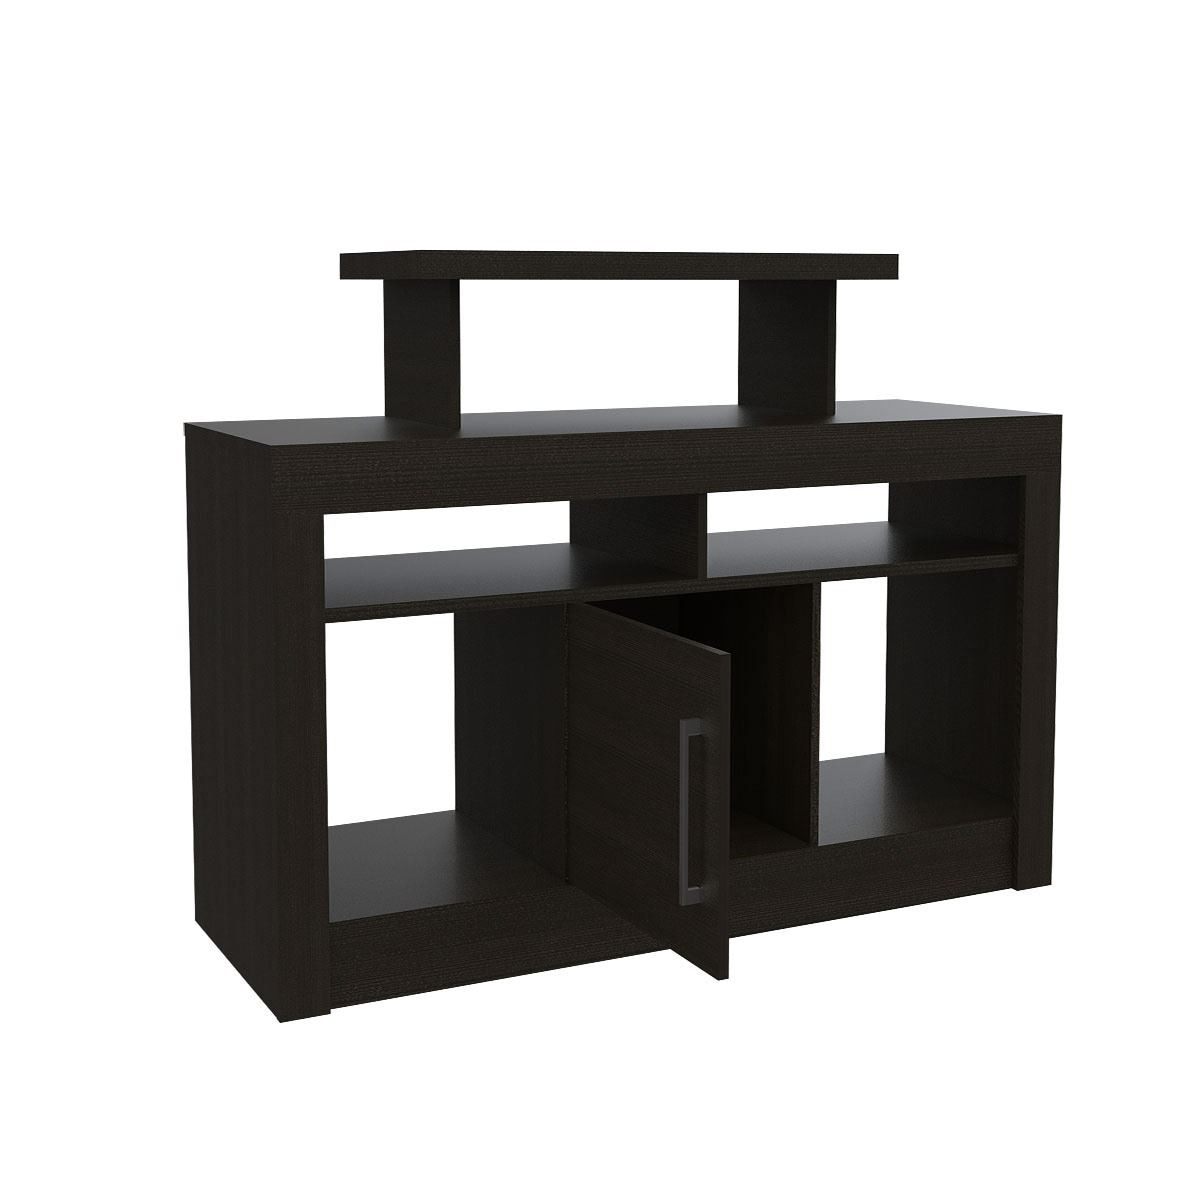 Rack para TV Excelsior Florida Color Chocolate Armable